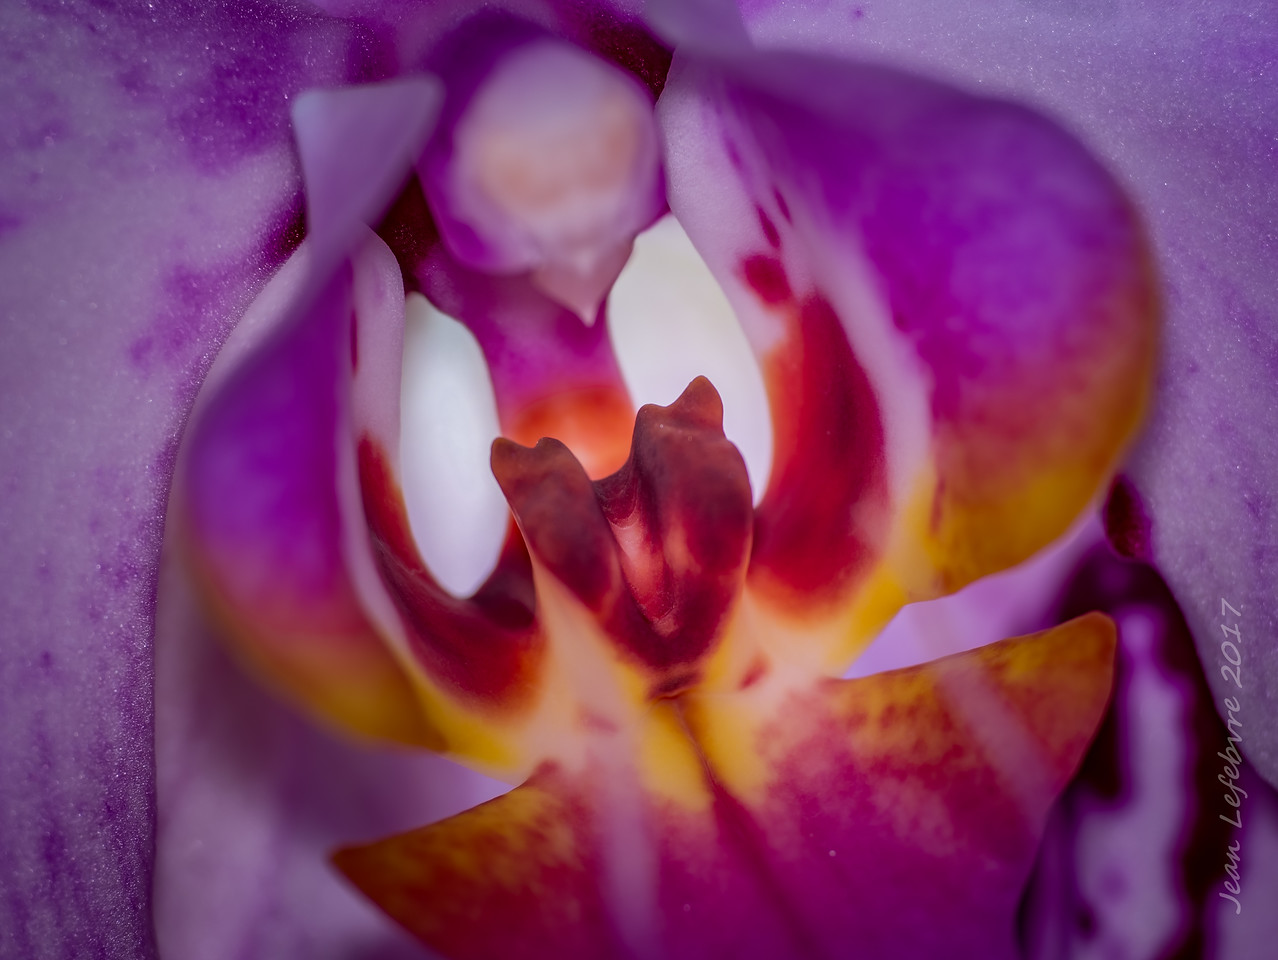 20171118-OrchidMacro-017of017-HDR